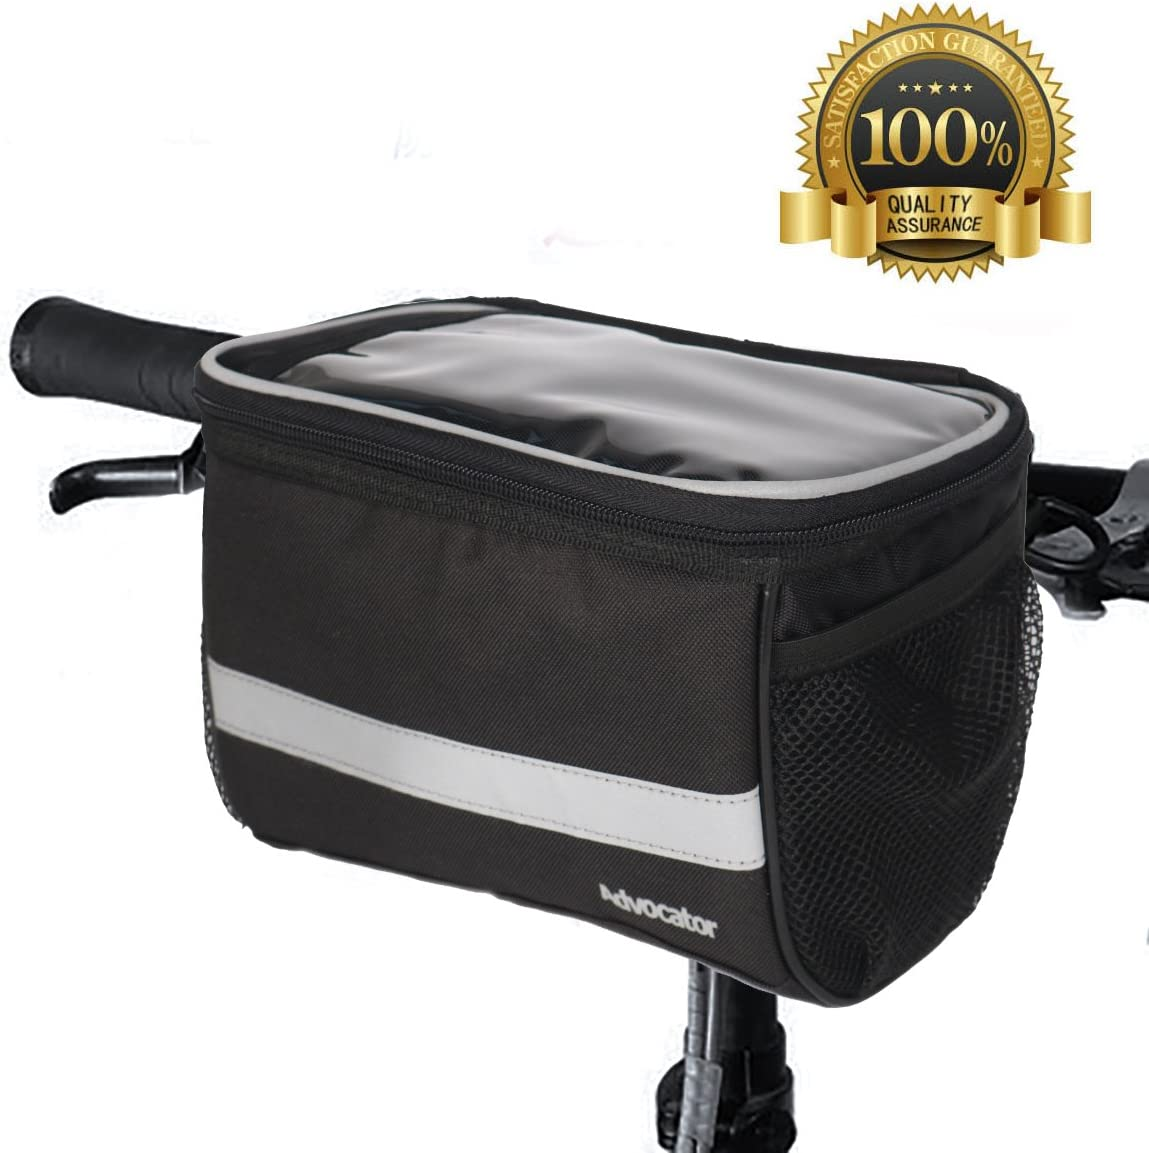 Advocator Bicycle Front Bags, Bike Handlebar Bag with Sliver Grey Reflective Stripe Outdoor Activity Cycling Basket Frame Pack Accessories Touchscreen Operation Transparent PVC Pouch